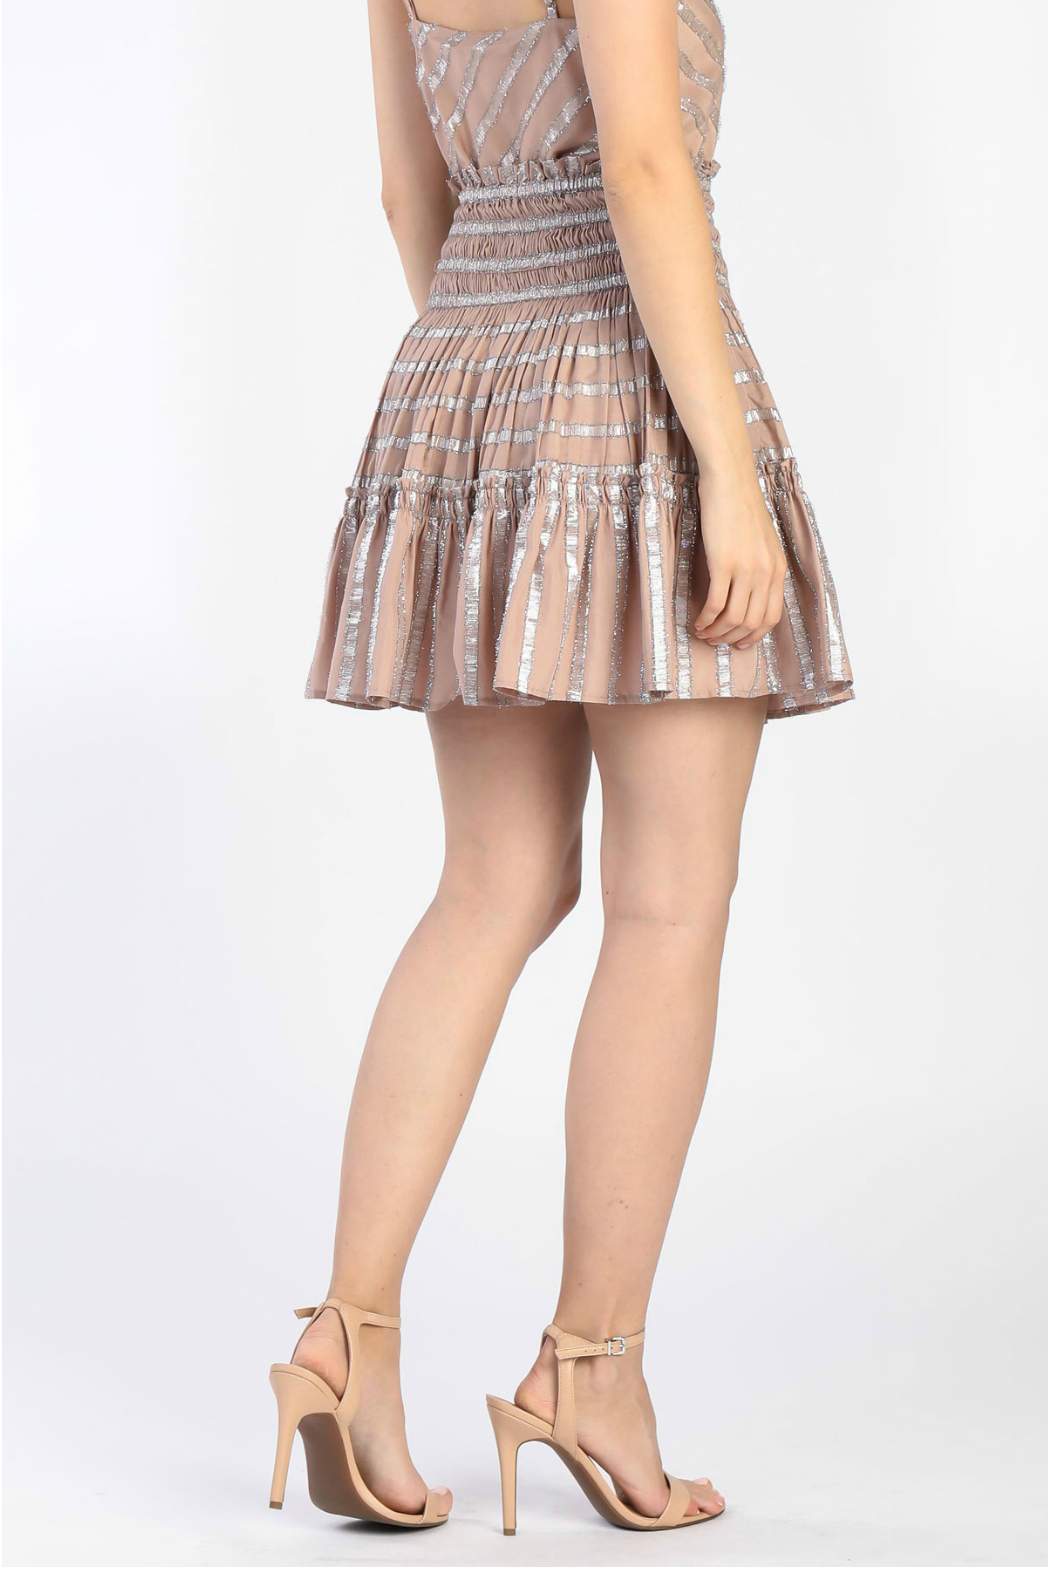 Current Air Smocked tiered short skirt - Front Full Image